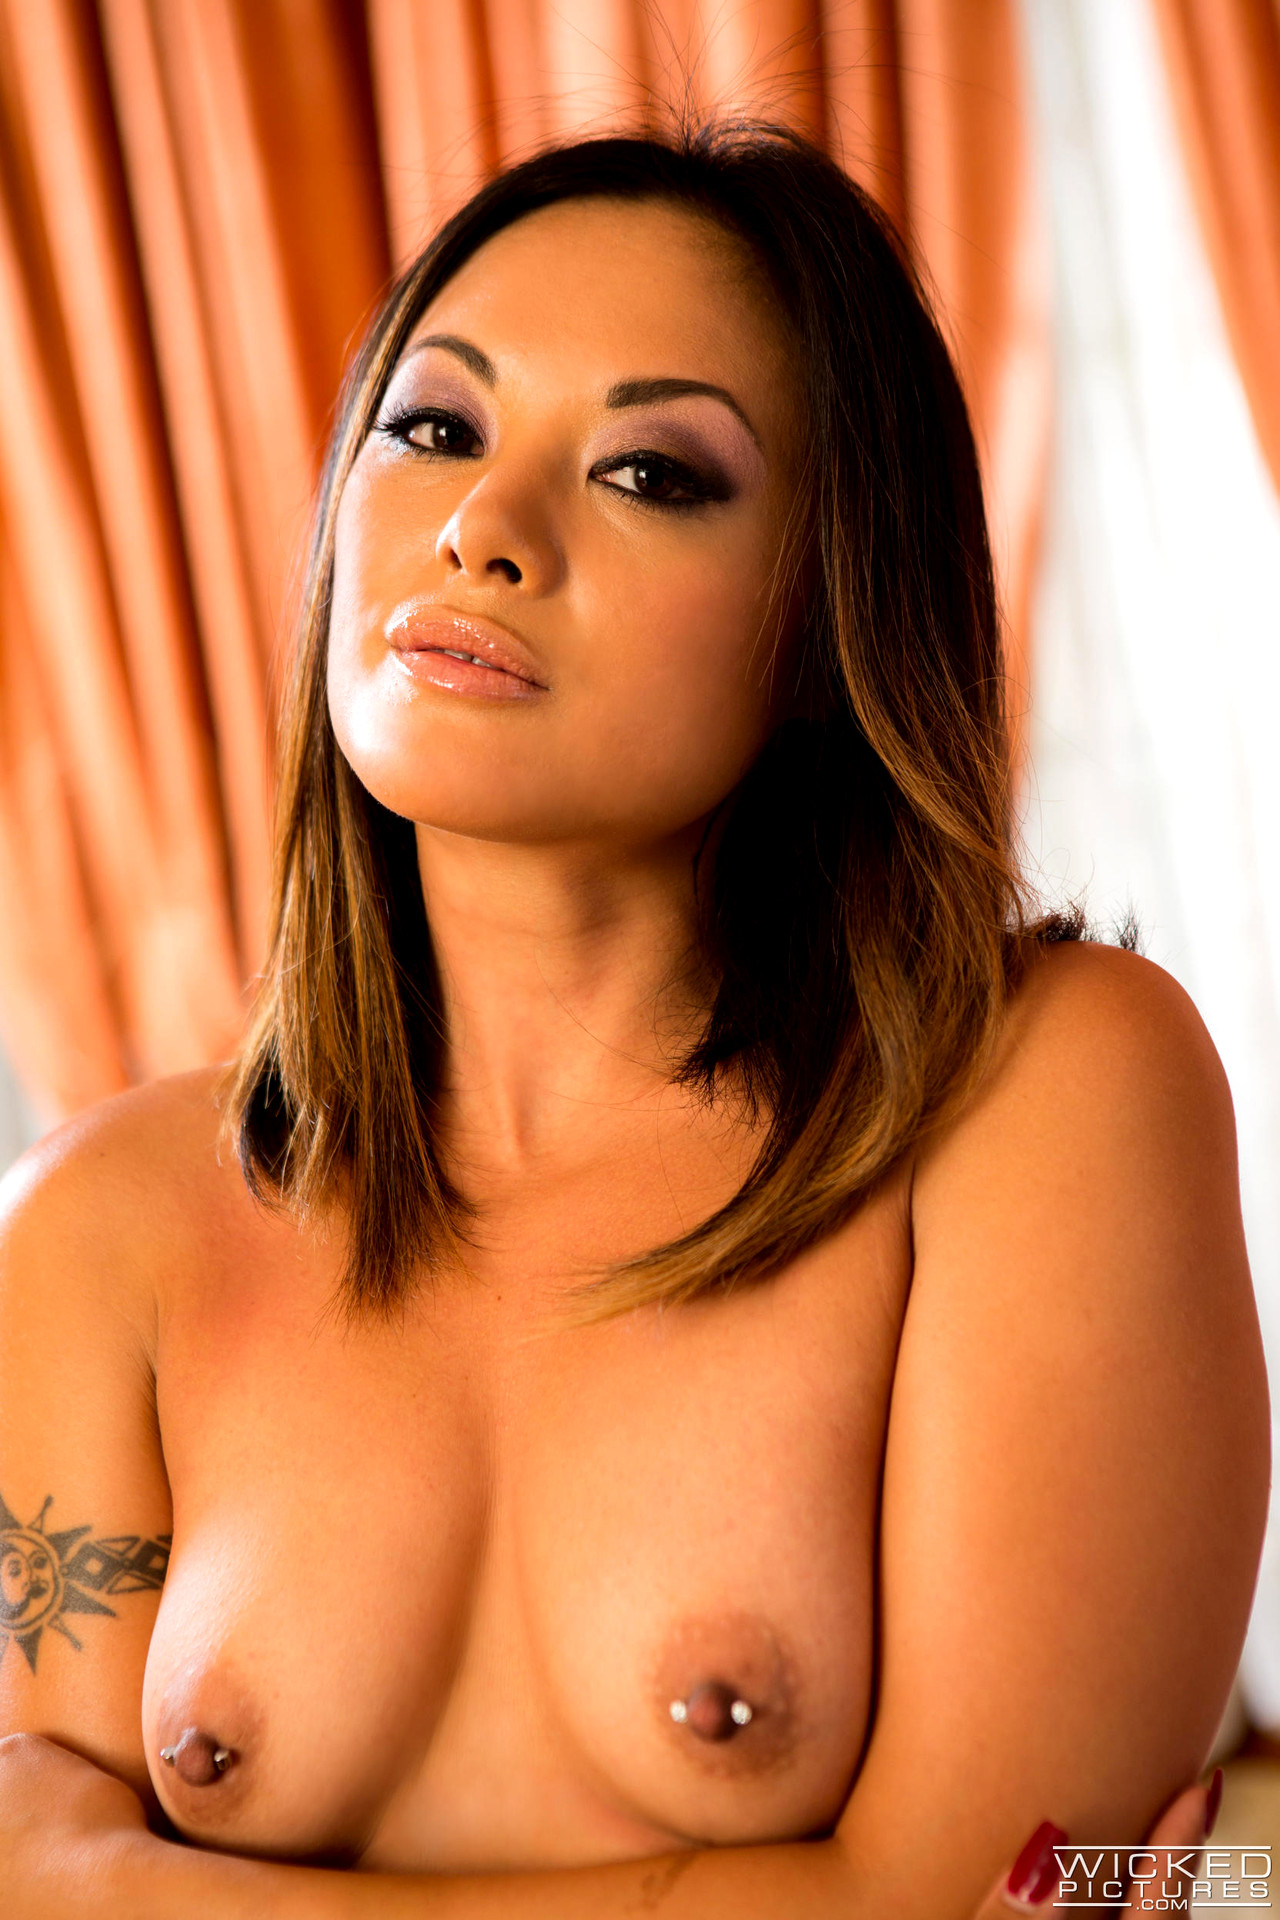 Kaylani lei serving forbidden fruits on a naked body